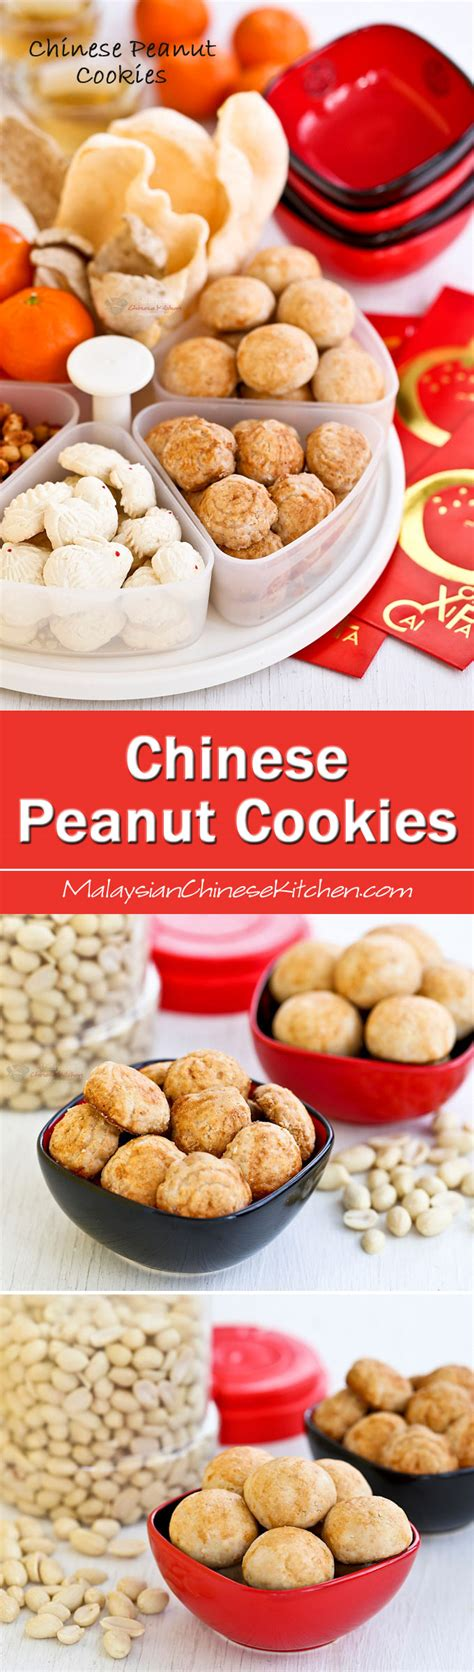 new year cookies recipes malaysia peanut cookies malaysian kitchen